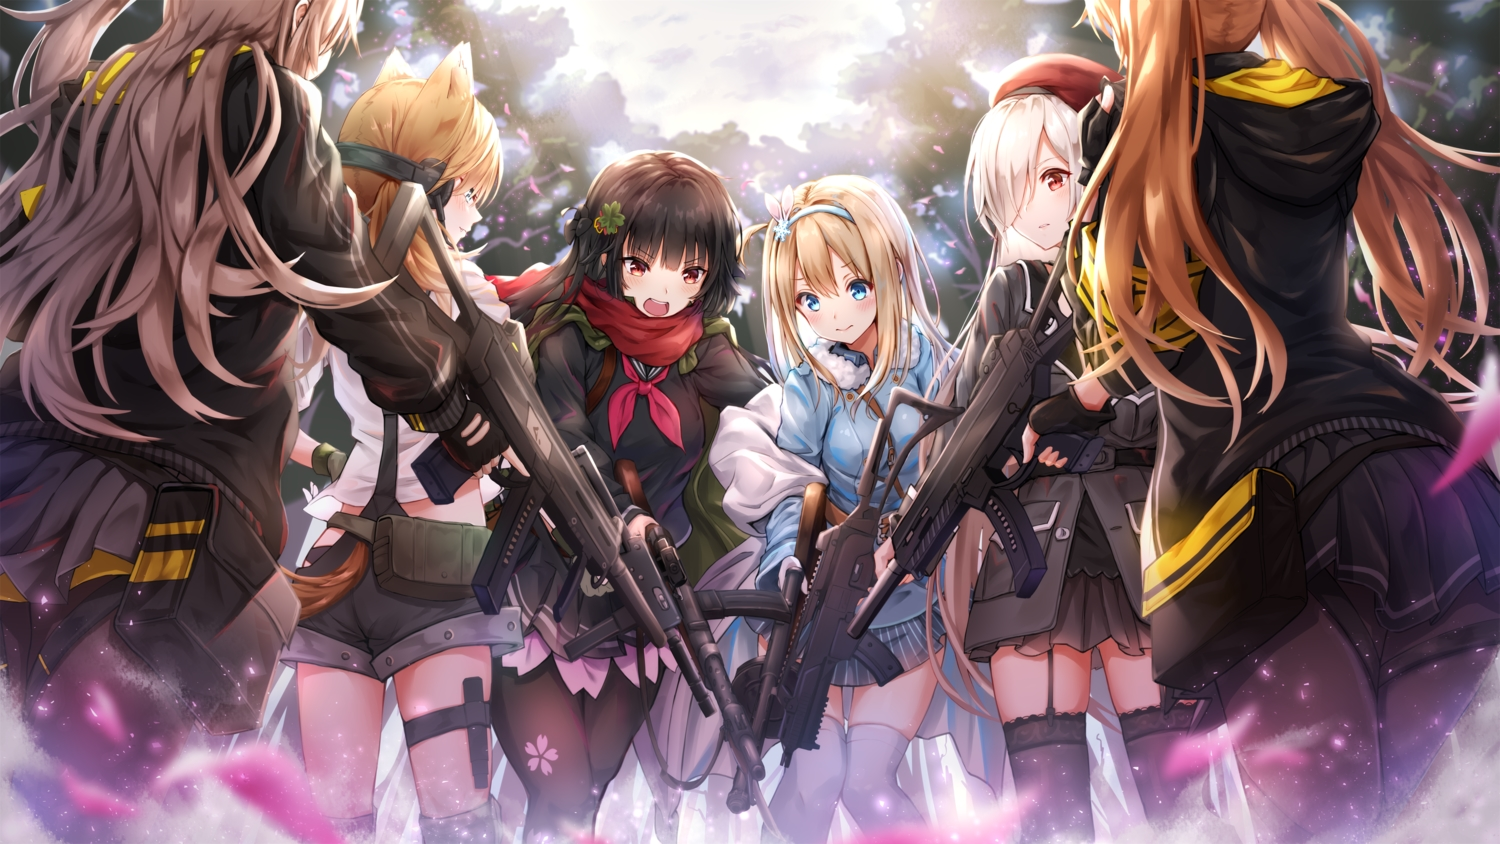 animal_ears anthropomorphism aqua_eyes black_hair blonde_hair brown_hair catgirl g36c_(girls_frontline) garter garter_belt girls_frontline group gun hat headband idw_(girls_frontline) long_hair pantyhose red_eyes school_uniform shorts skirt stockings suomi_(girls_frontline) thighhighs toki_(toki_ship8) twintails type_100_(girls_frontline) ump-45_(girls_frontline) ump-9_(girls_frontline) weapon white_hair